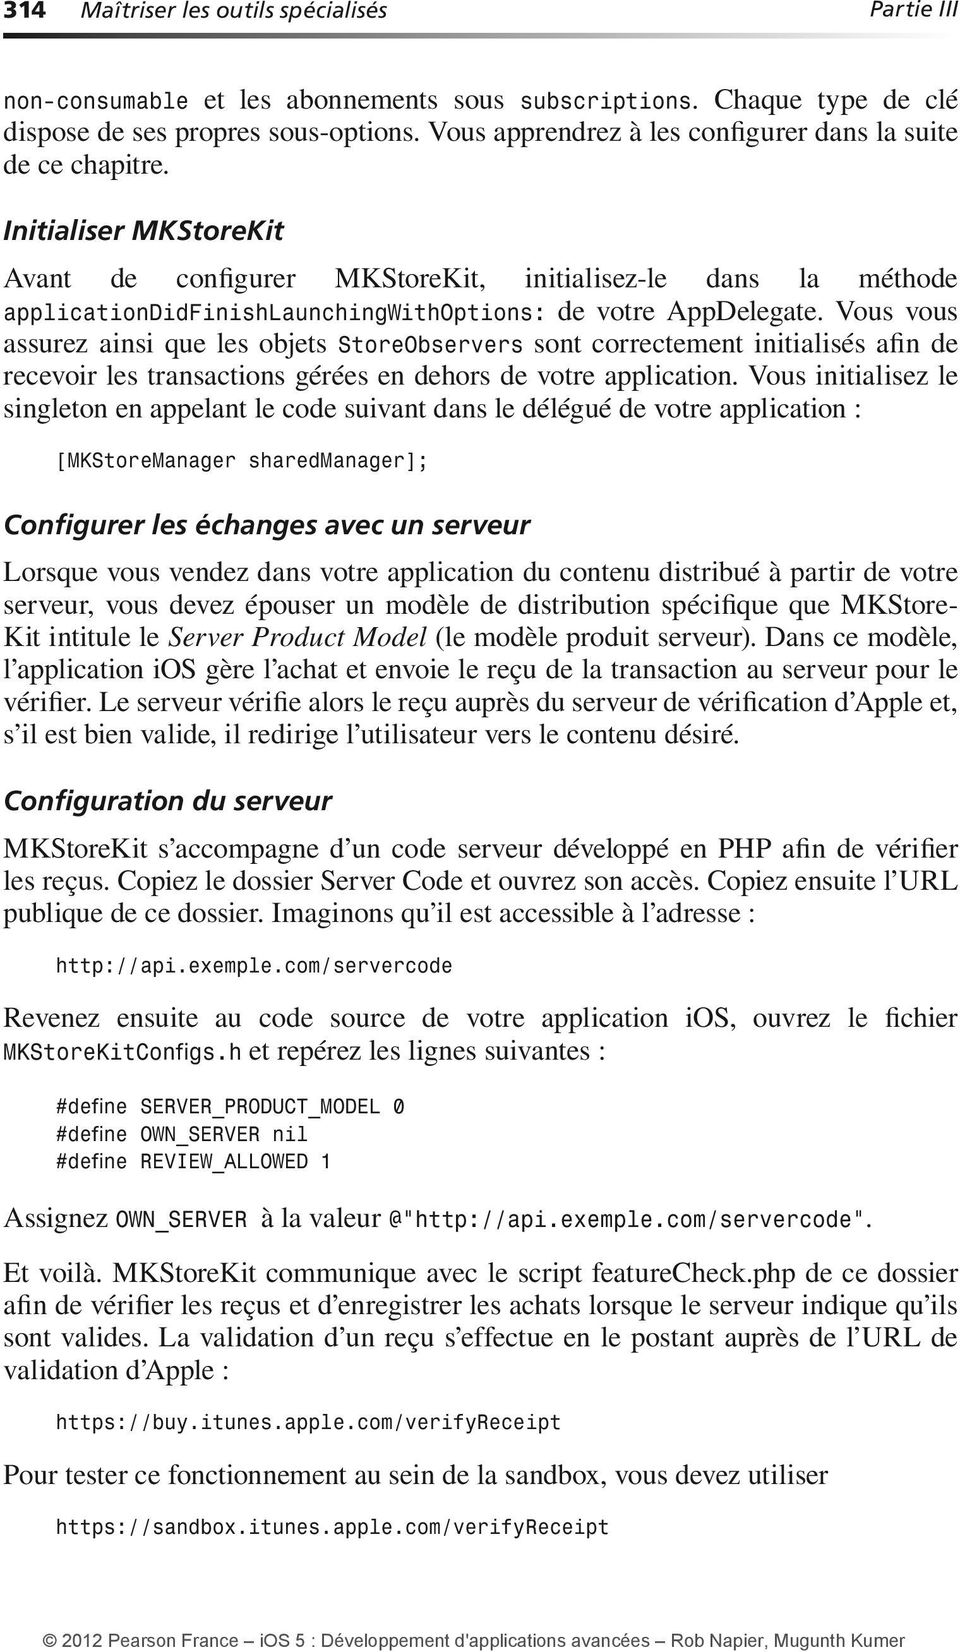 Initialiser MKStoreKit Avant de configurer MKStoreKit, initialisez-le dans la méthode applicationdid FinishLaunchingWithOptions: de votre AppDelegate.